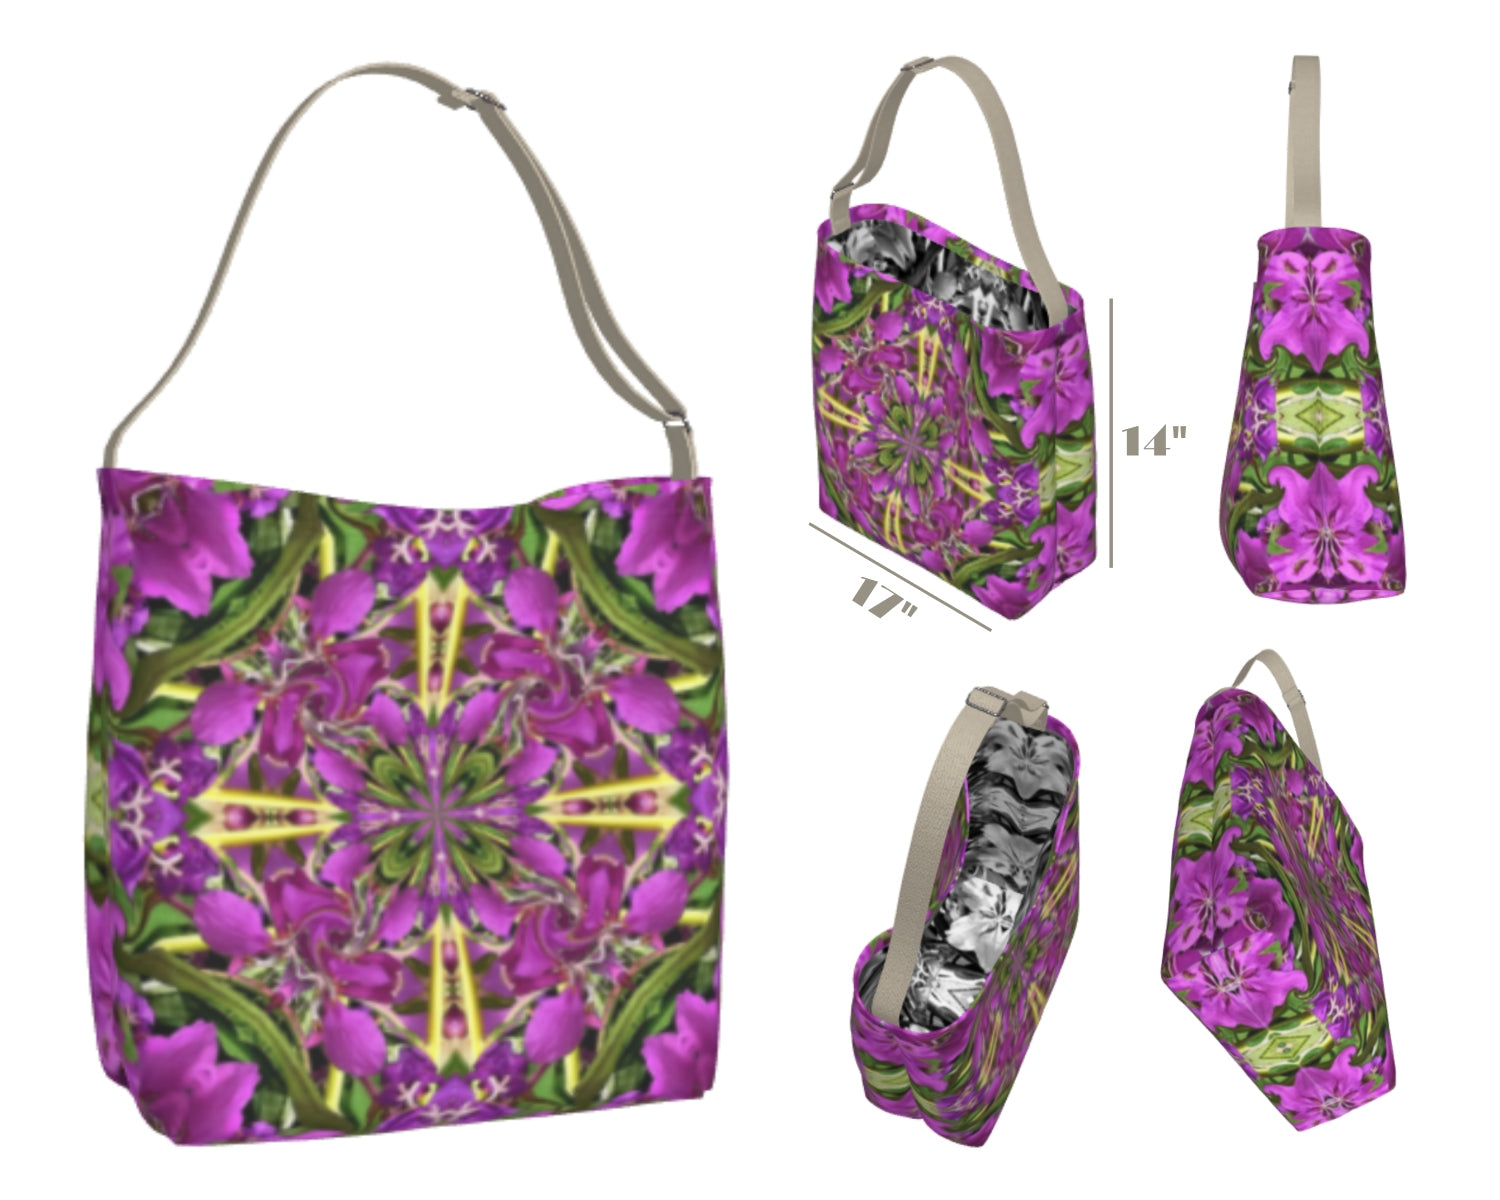 Bright Summer Floral Print Bag